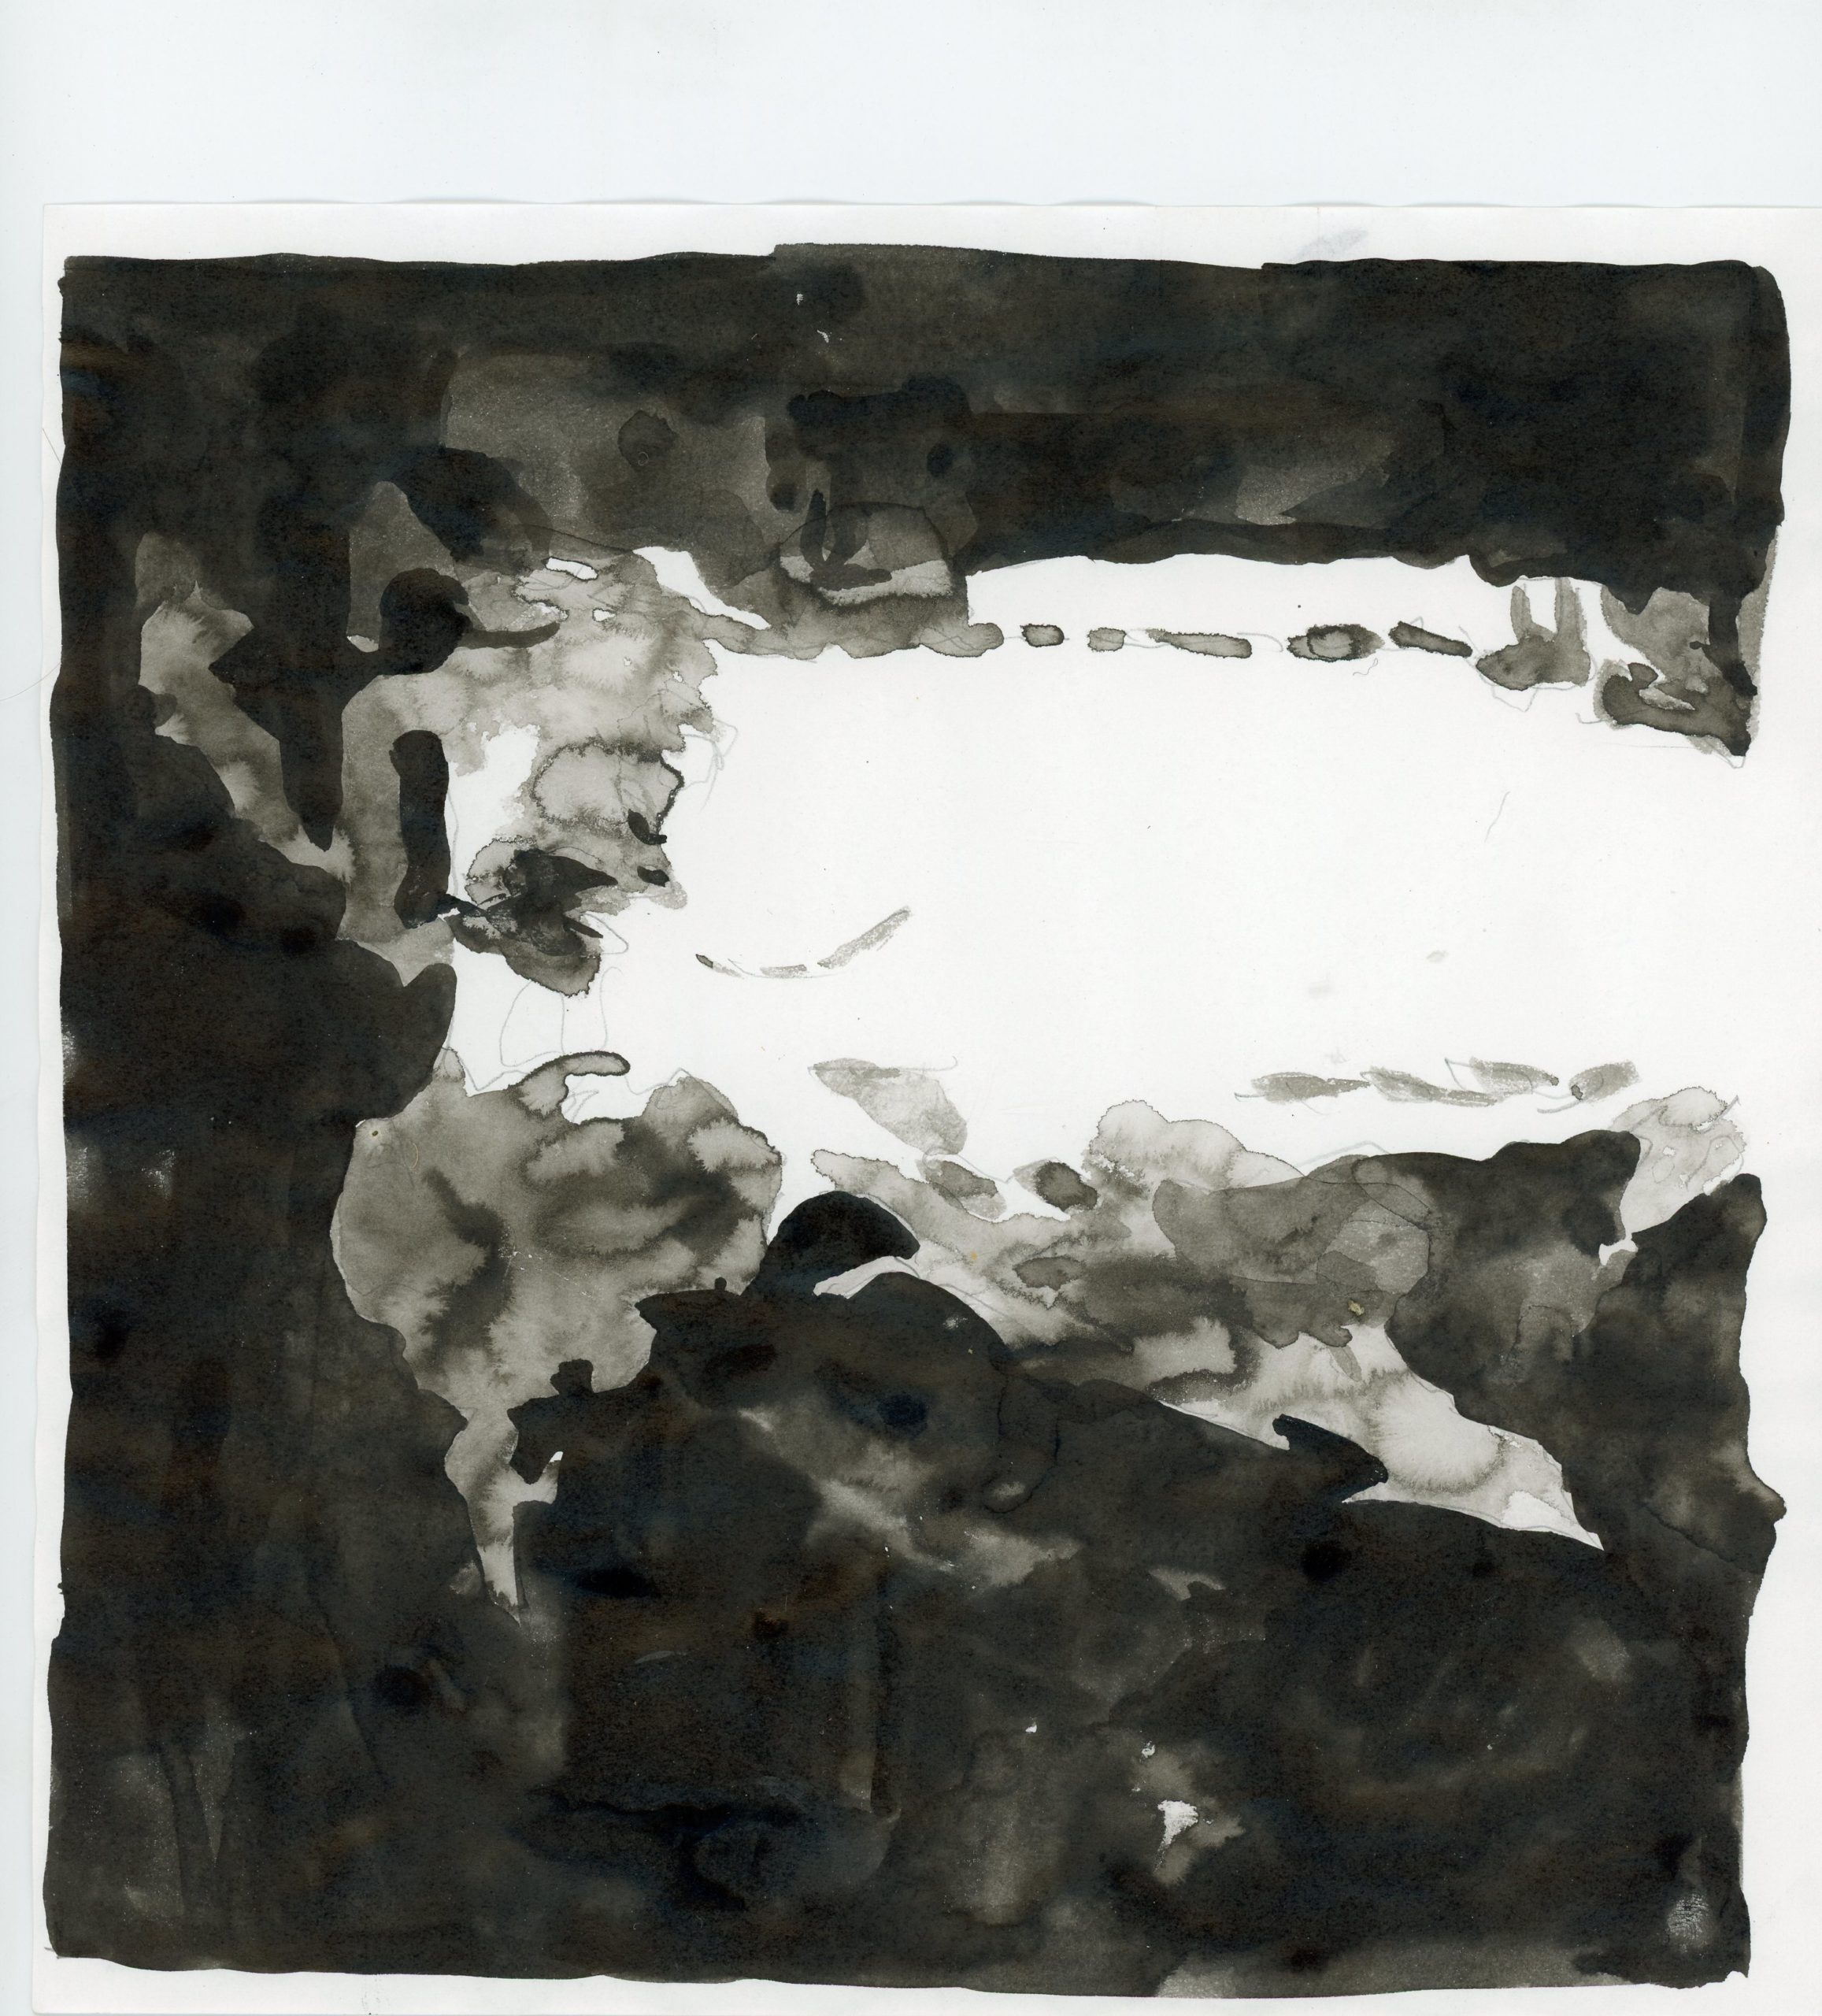 Anna Ridler, Fall of the House of Usher II, 1_11120, ink on paper, 21 x 21 cm, 2017